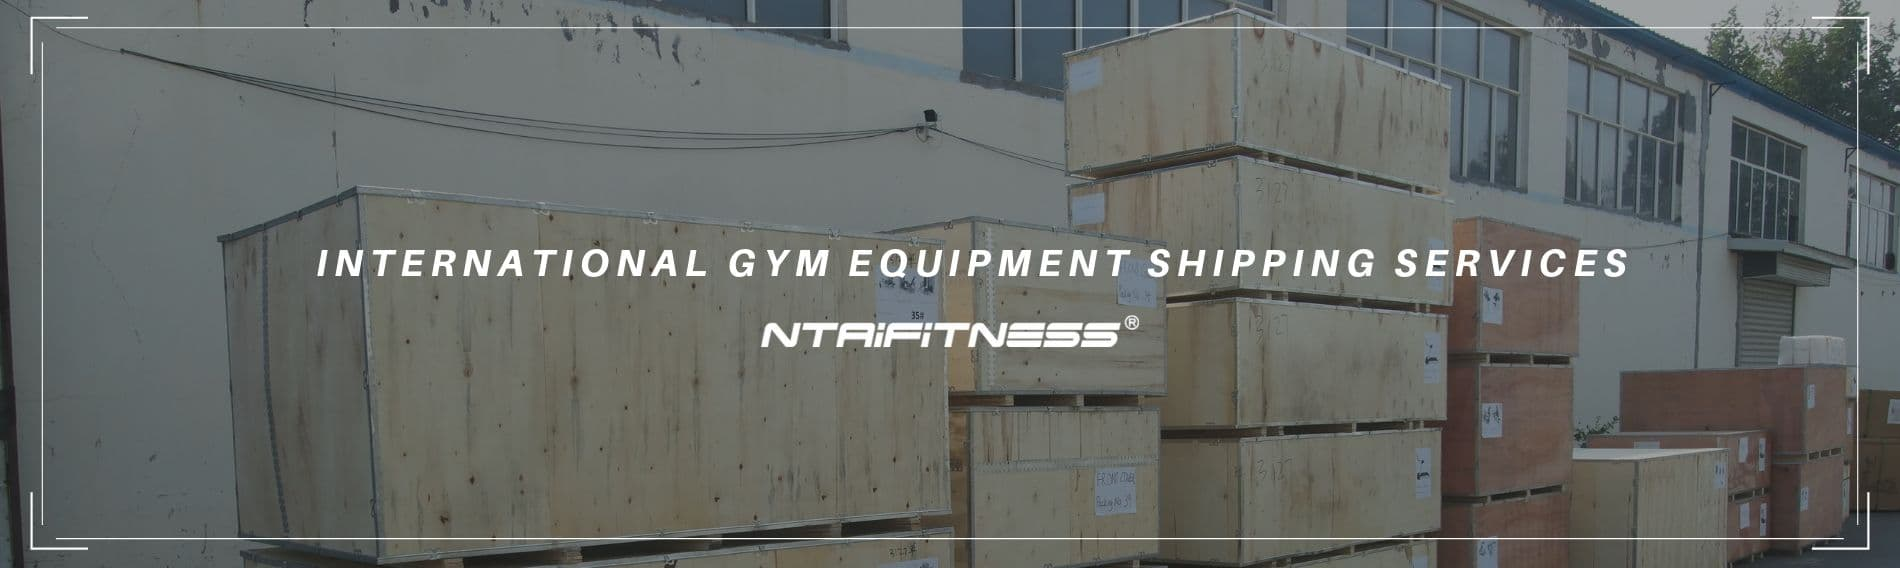 International Gym Equipment Shipping Services